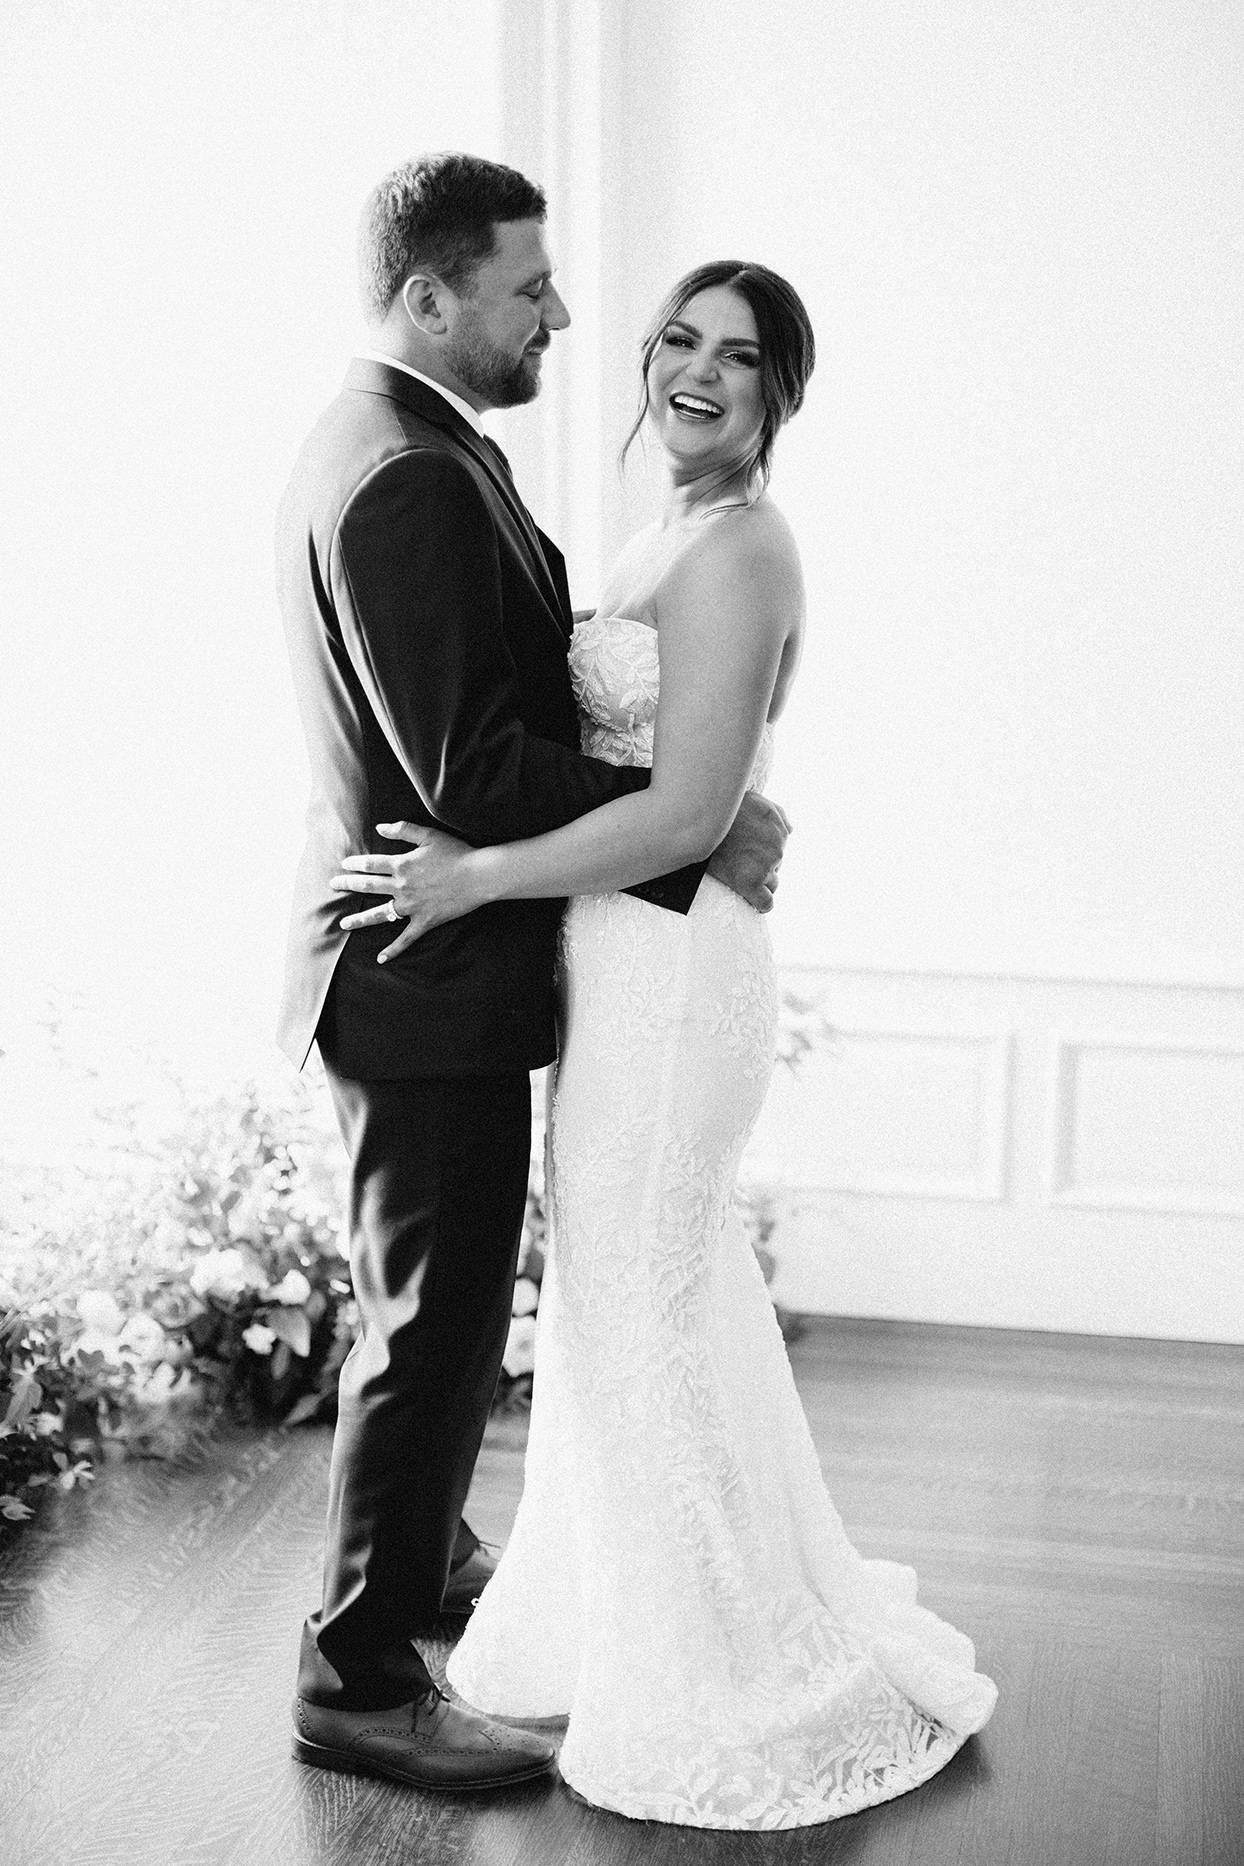 bride laughing while groom smiles at her during first dance